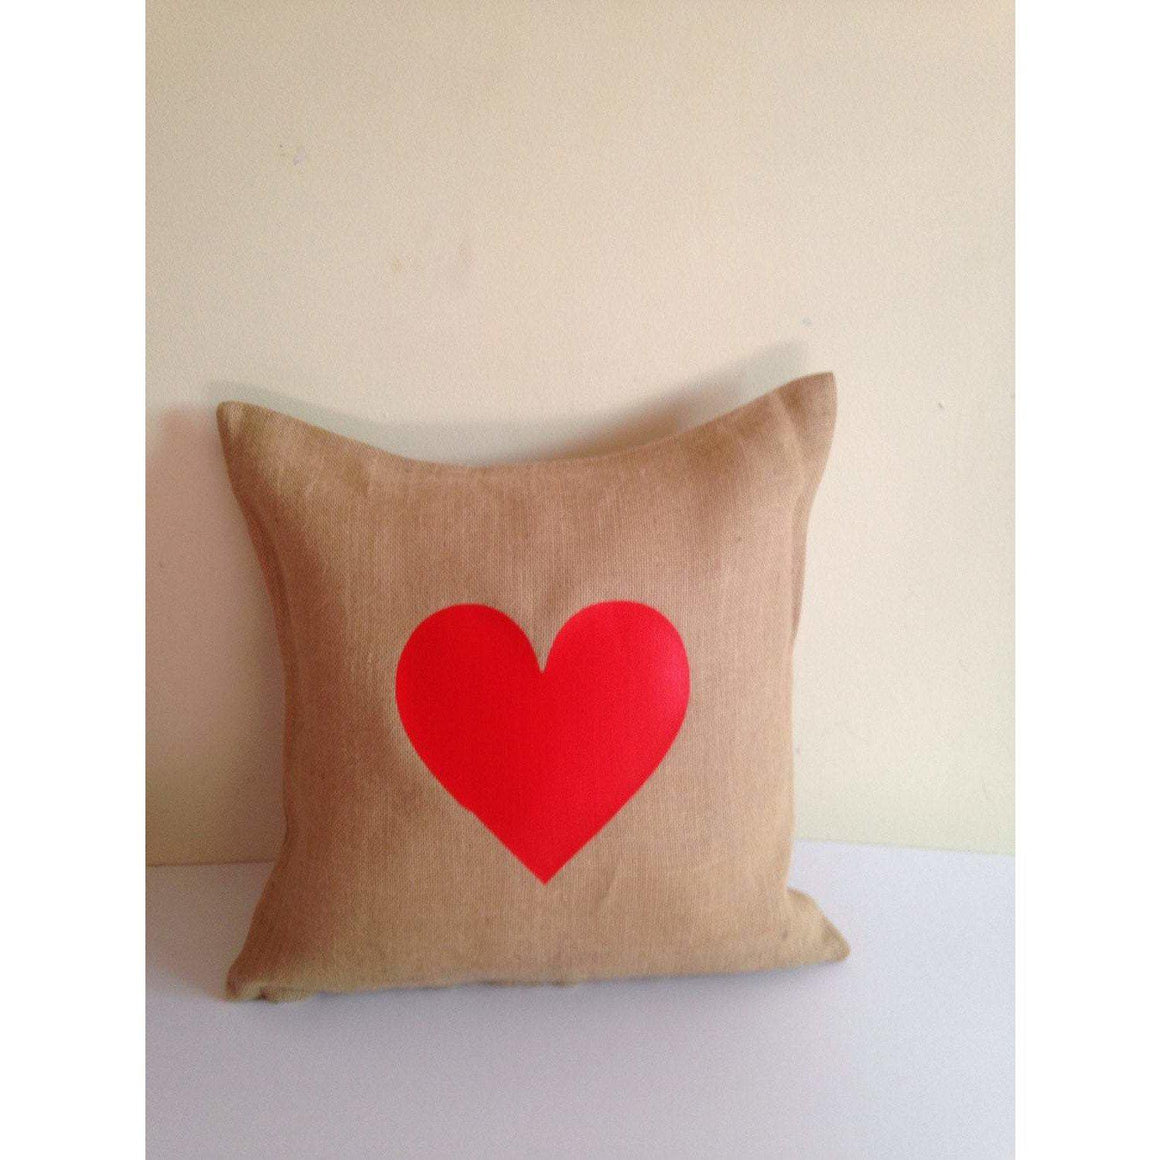 Girlfriend gift ideas christmas, Valentine Unique Gifts for her, Girl Friend Gift, Burlap Pillow covers, Rustic Heart Pillows